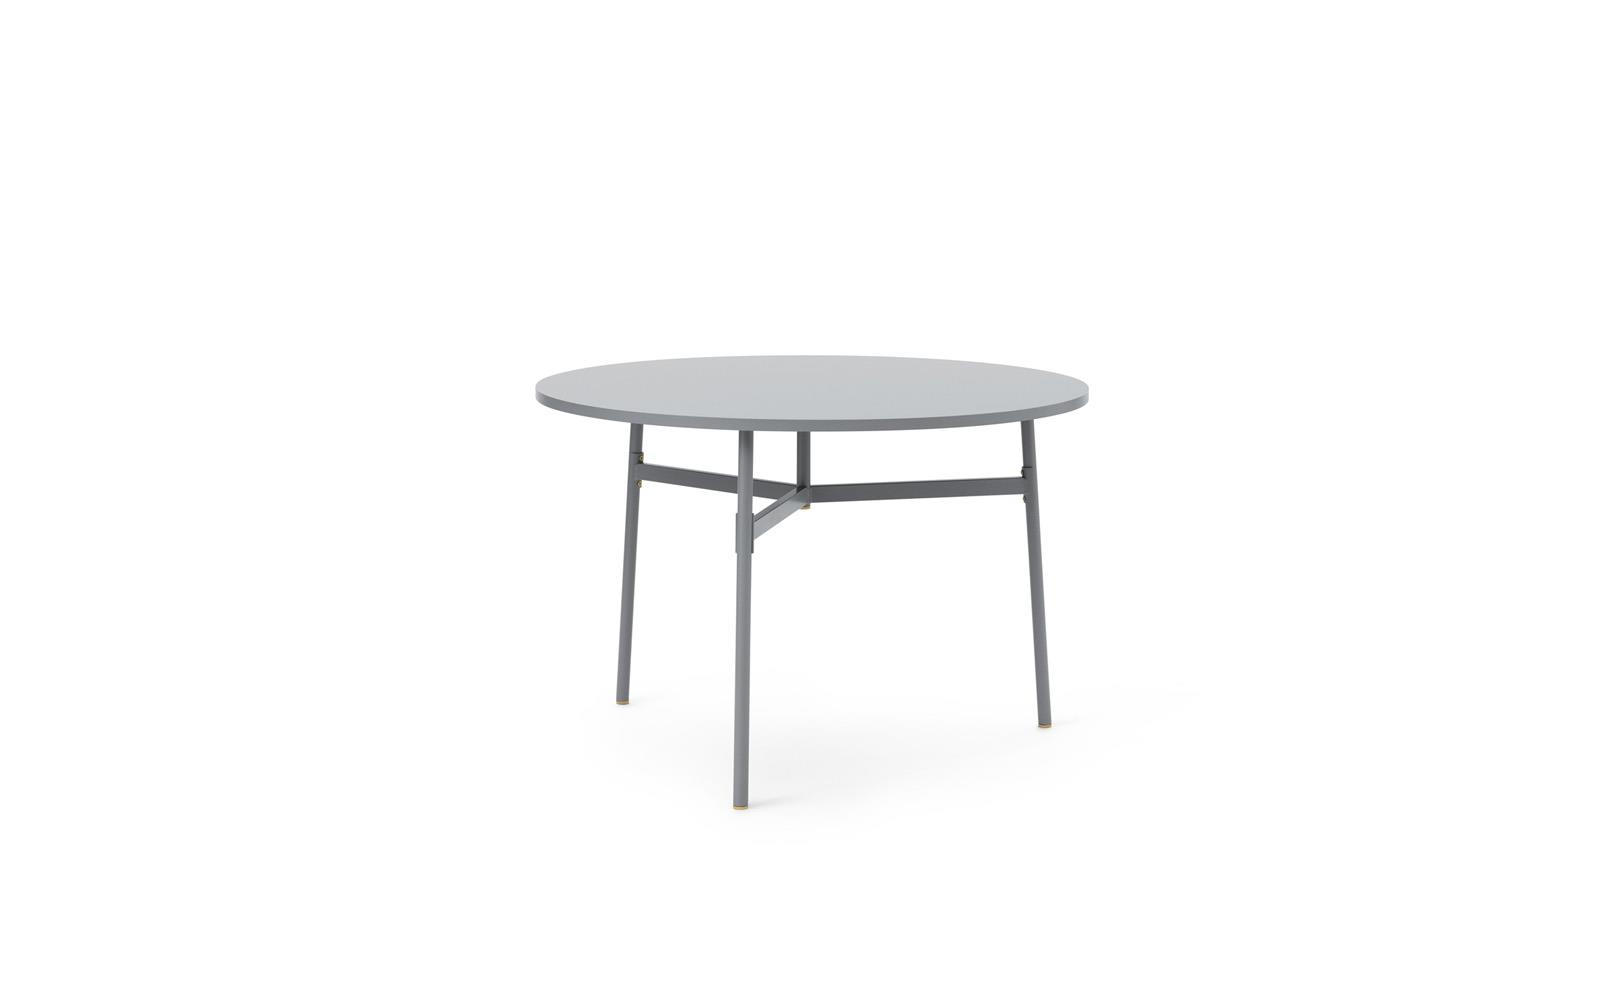 Union Table 110 x H745 cm1